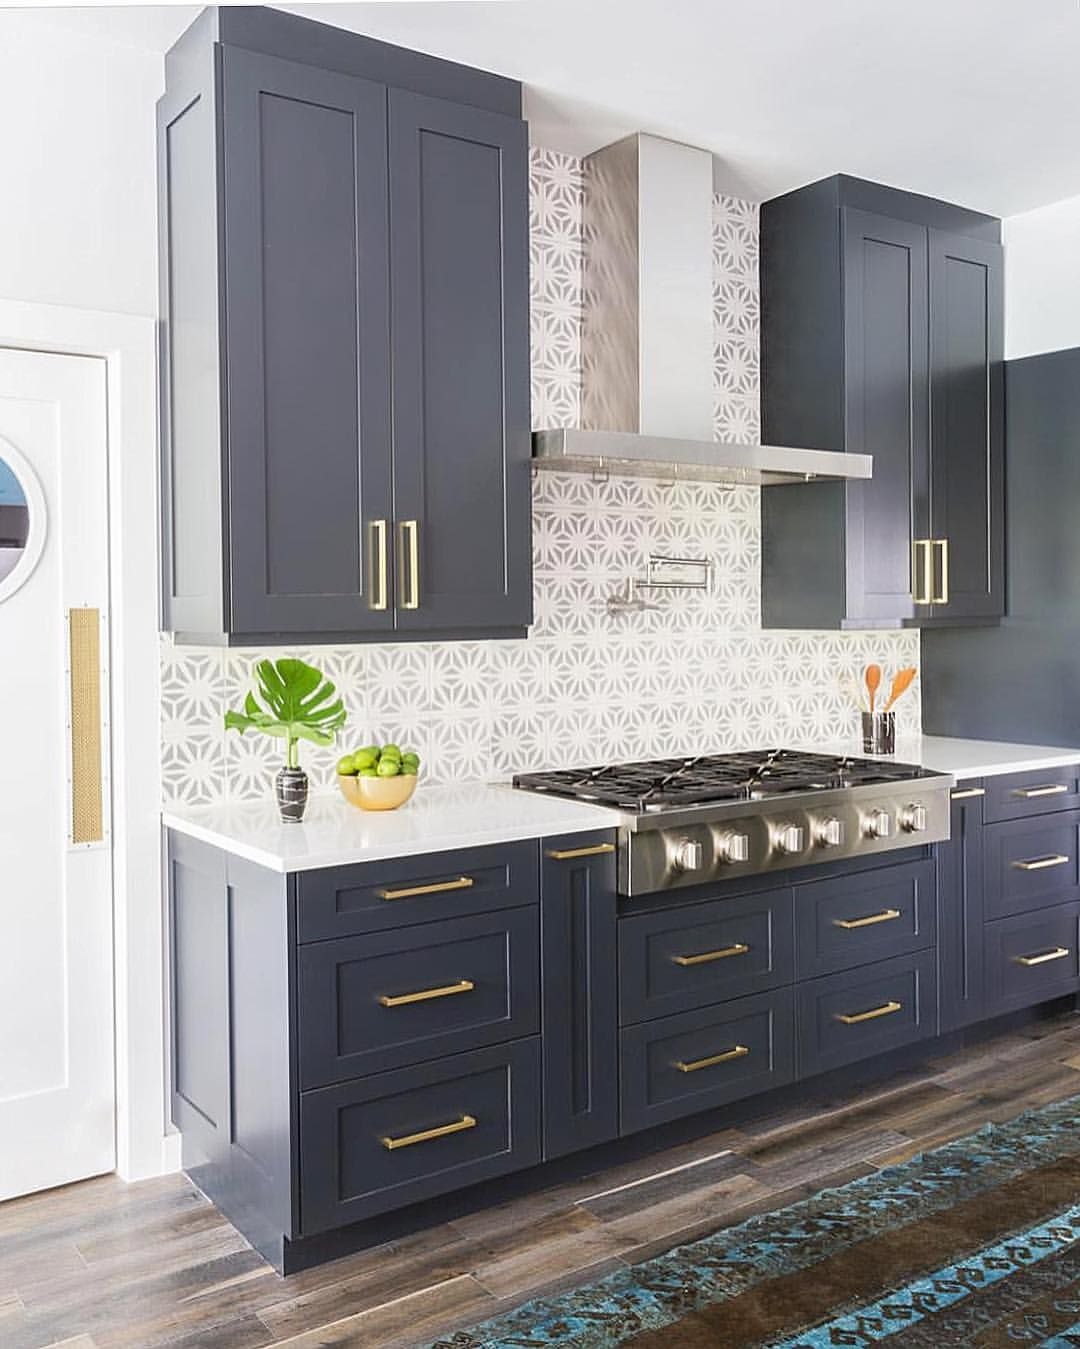 Material For Kitchen Cabinet: Navy Blue Cabinets, Stone Textiles Kitchen